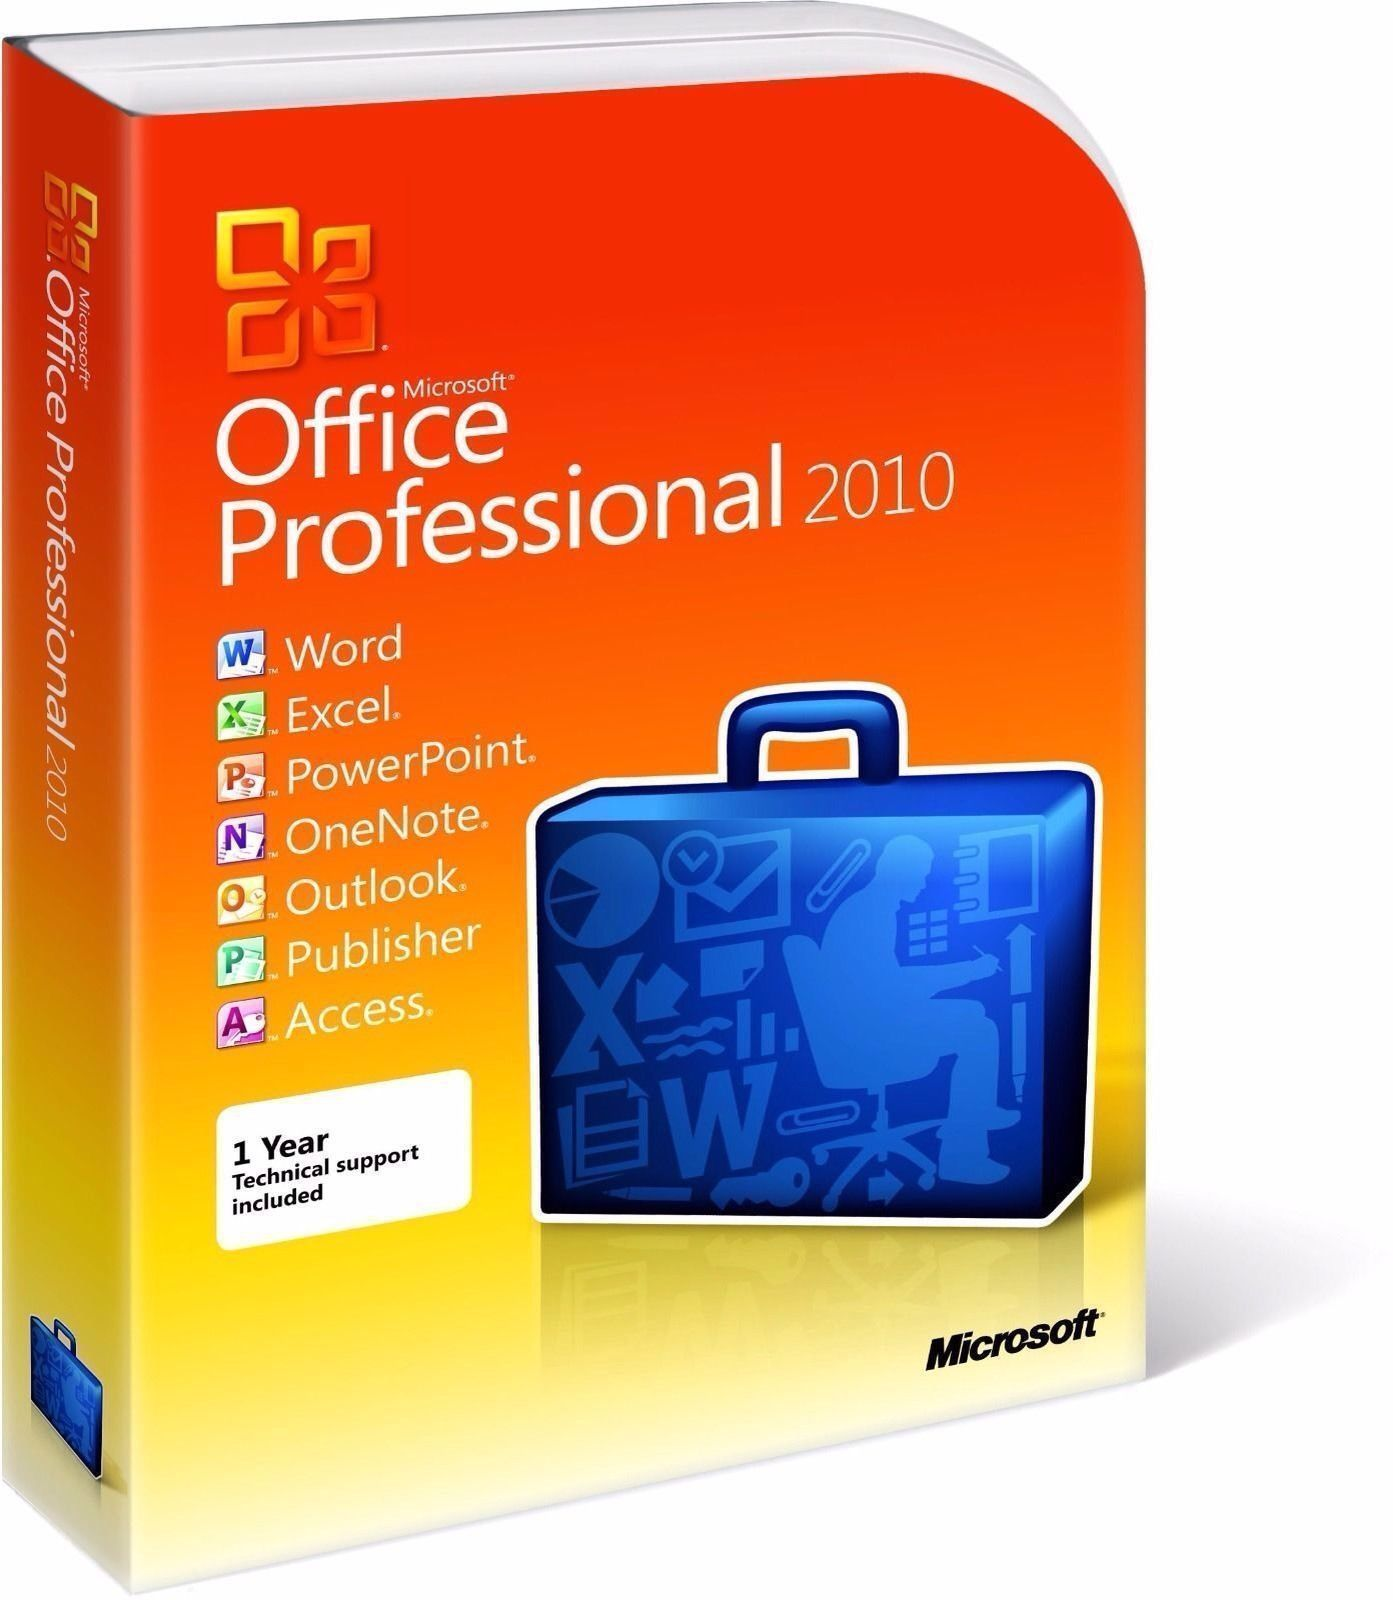 Microsoft Office Professional 2010 New & Sealed, for PC Windows XP, 7, 8, or 10